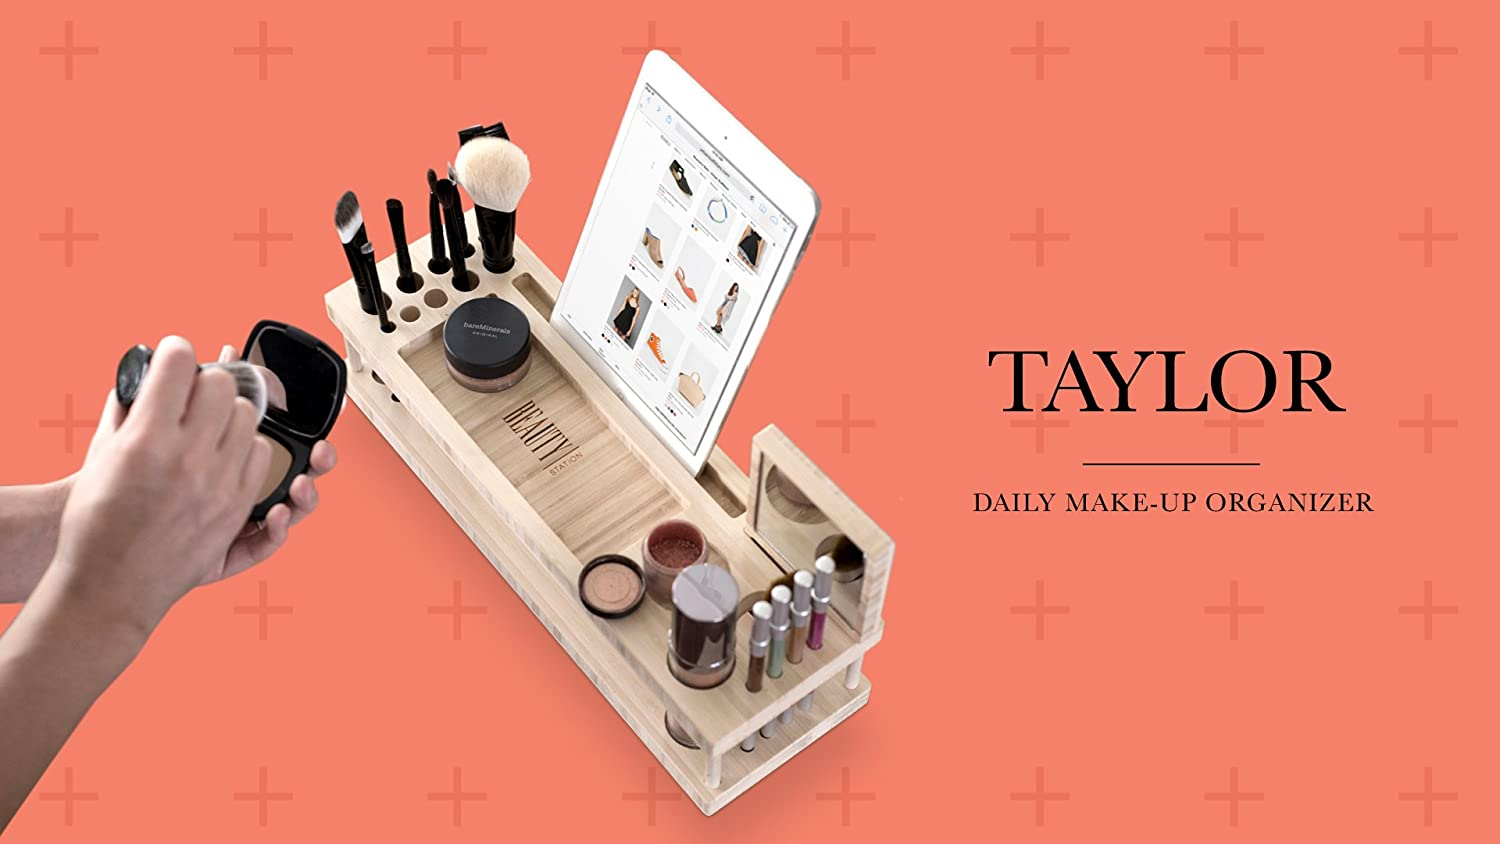 Taylor Beauty Station   Daily Makeup Organizer With Mirror by I Skelter